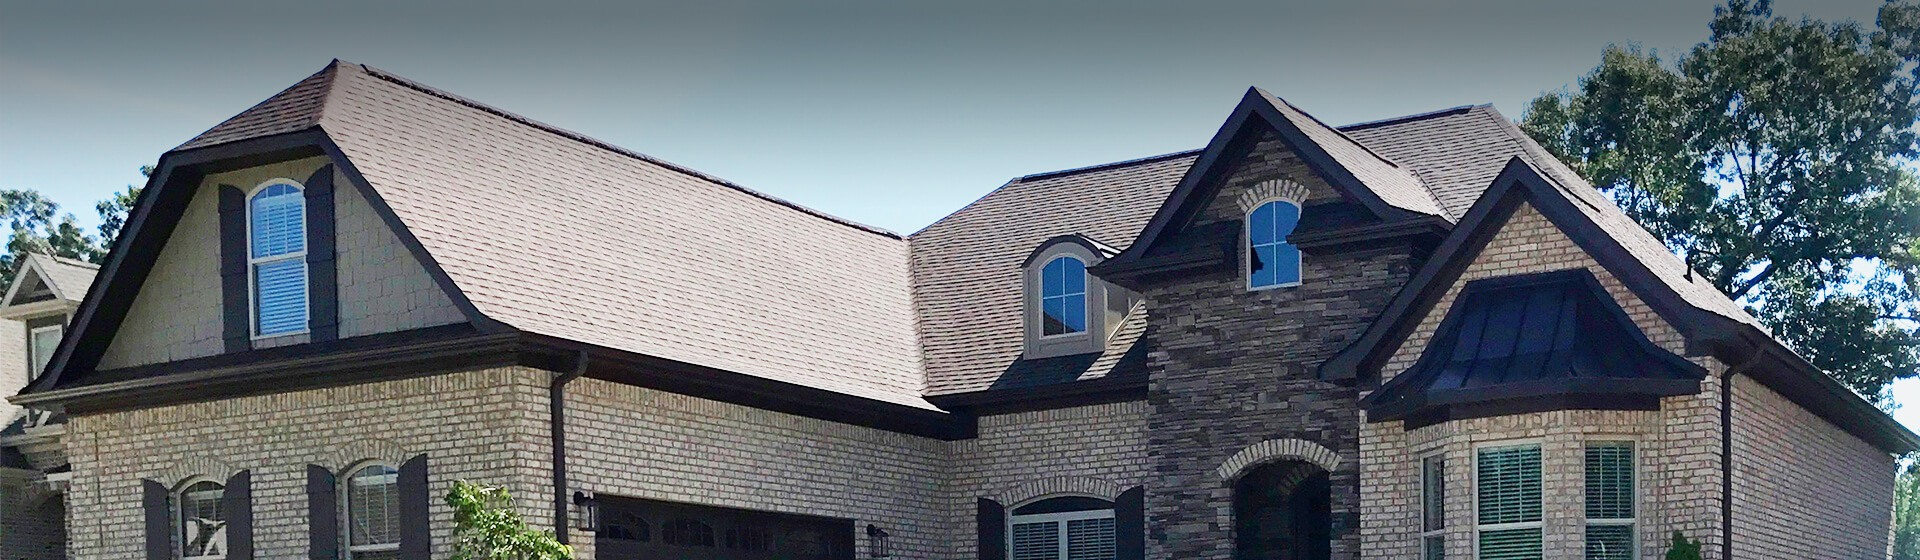 Roofing Services Ridgeline Construction Roofing